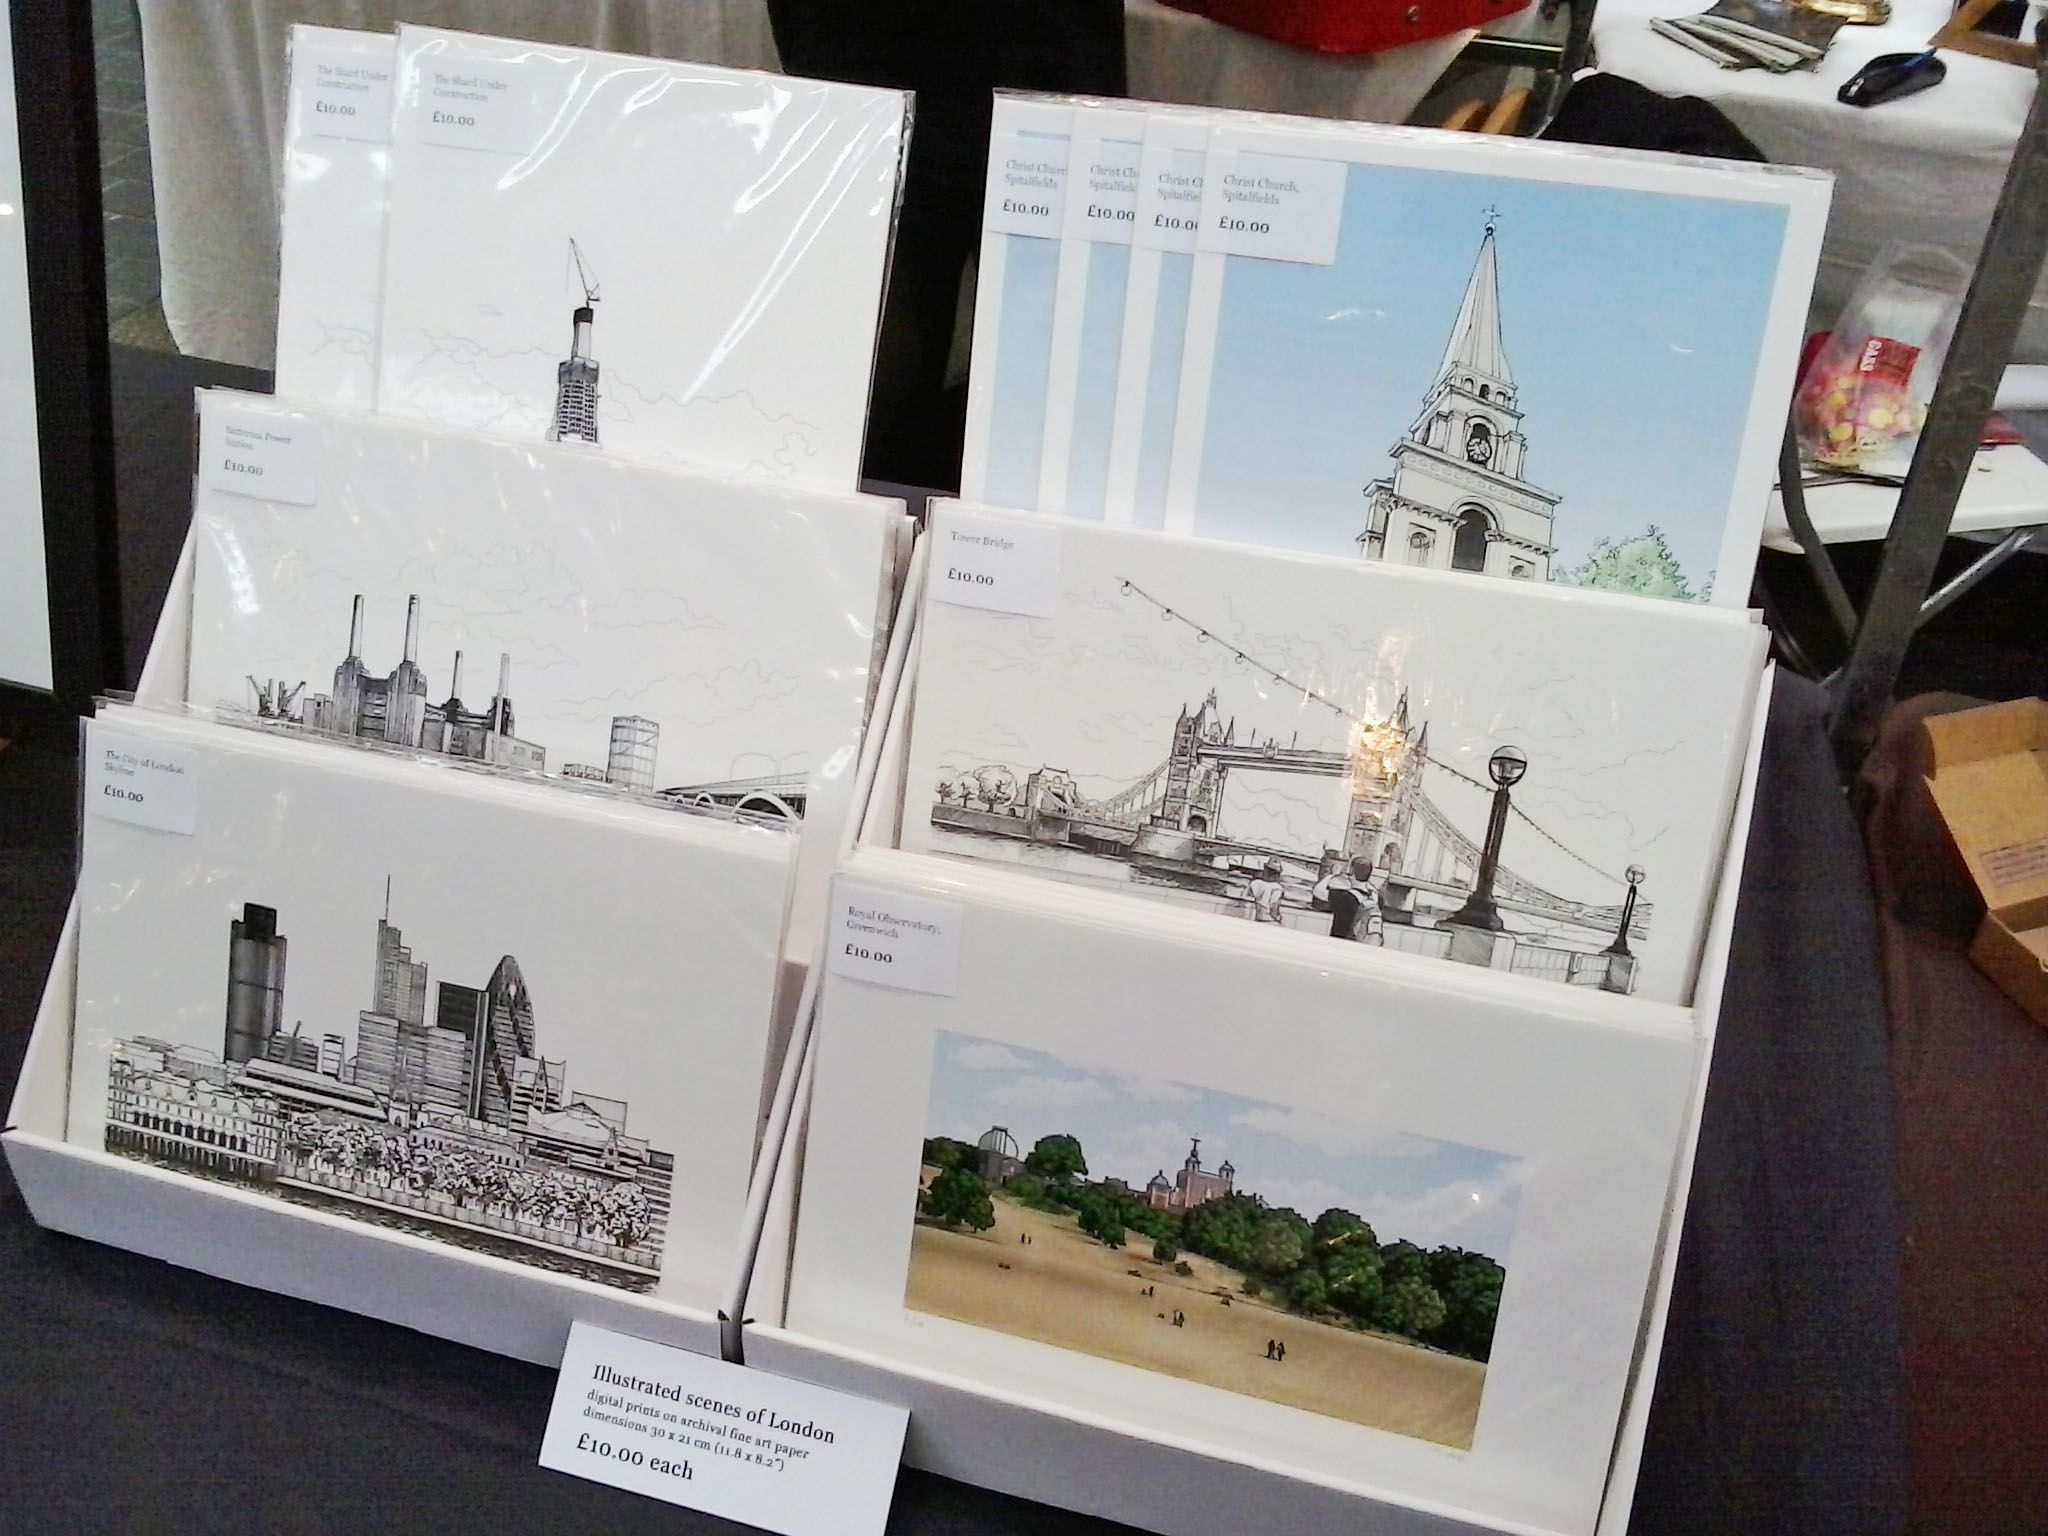 View of A4 prints on display at the We Make London Market, Old Spitalfields, London E1 on 10th November 2012